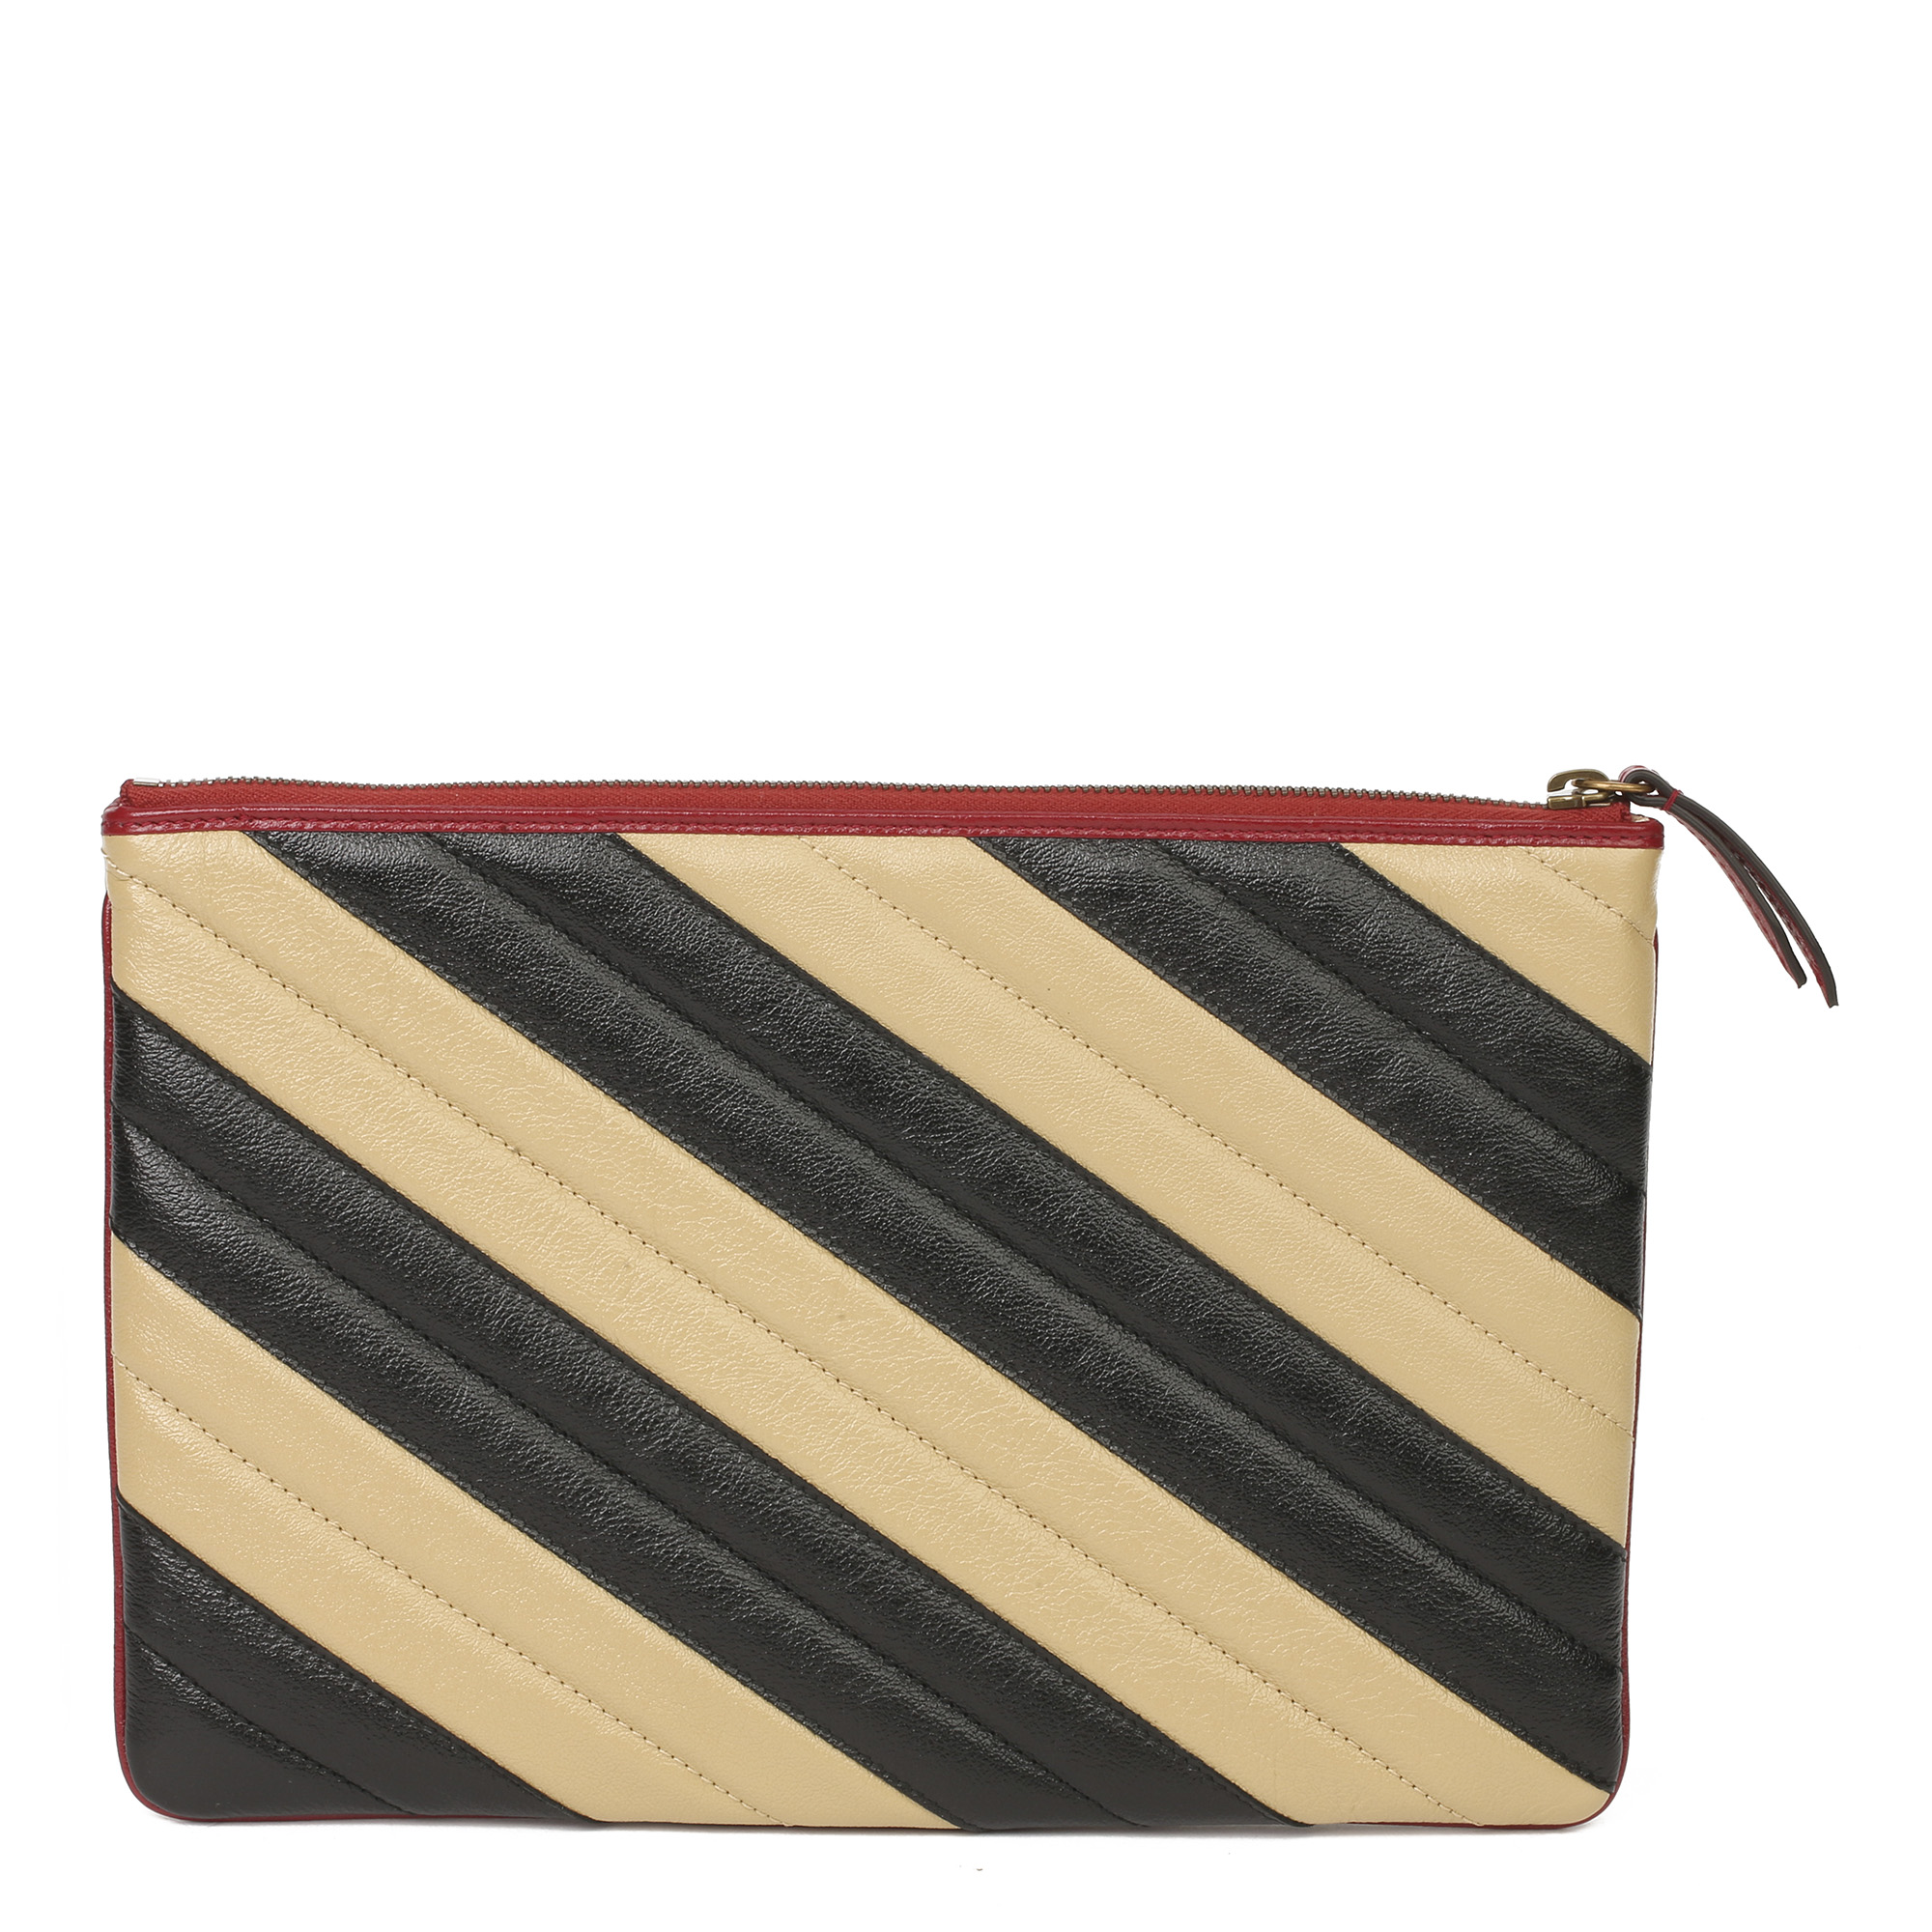 Gucci Black, Cream & Red Diagonal Quilted Aged Calfskin Leather Marmont Pouch - Image 9 of 11